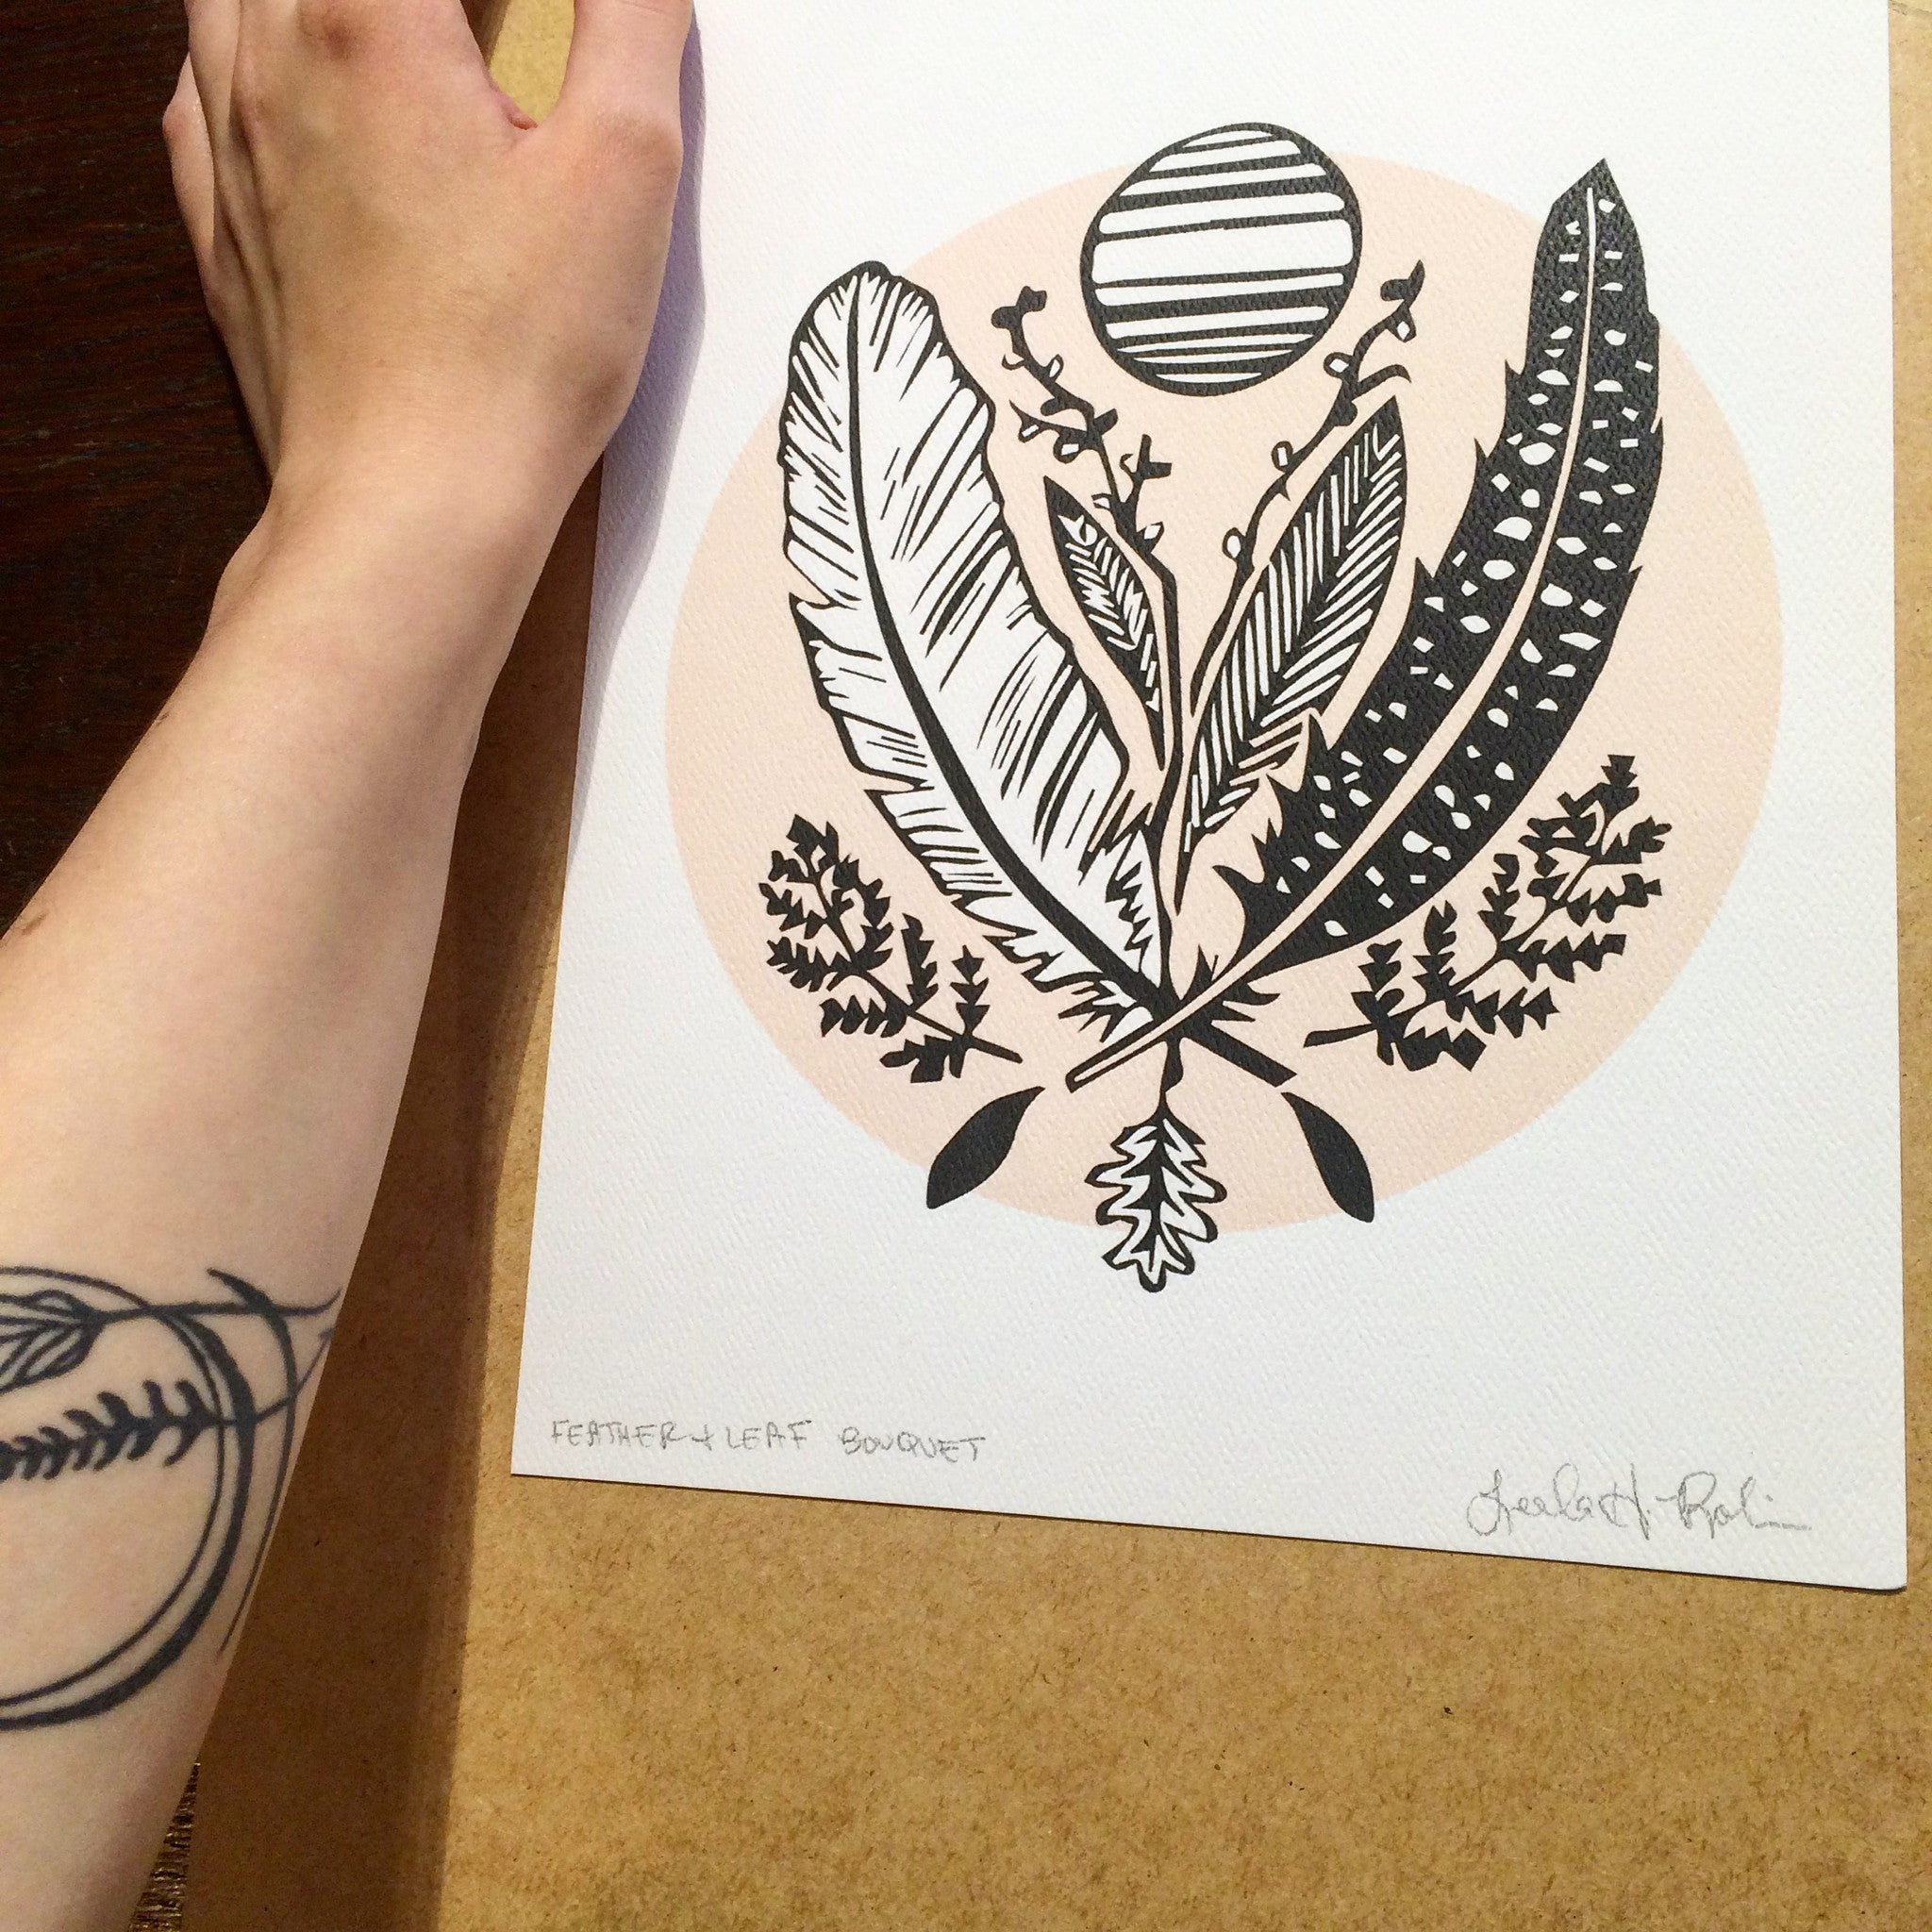 Feather and Leaf Bouquet Art Print